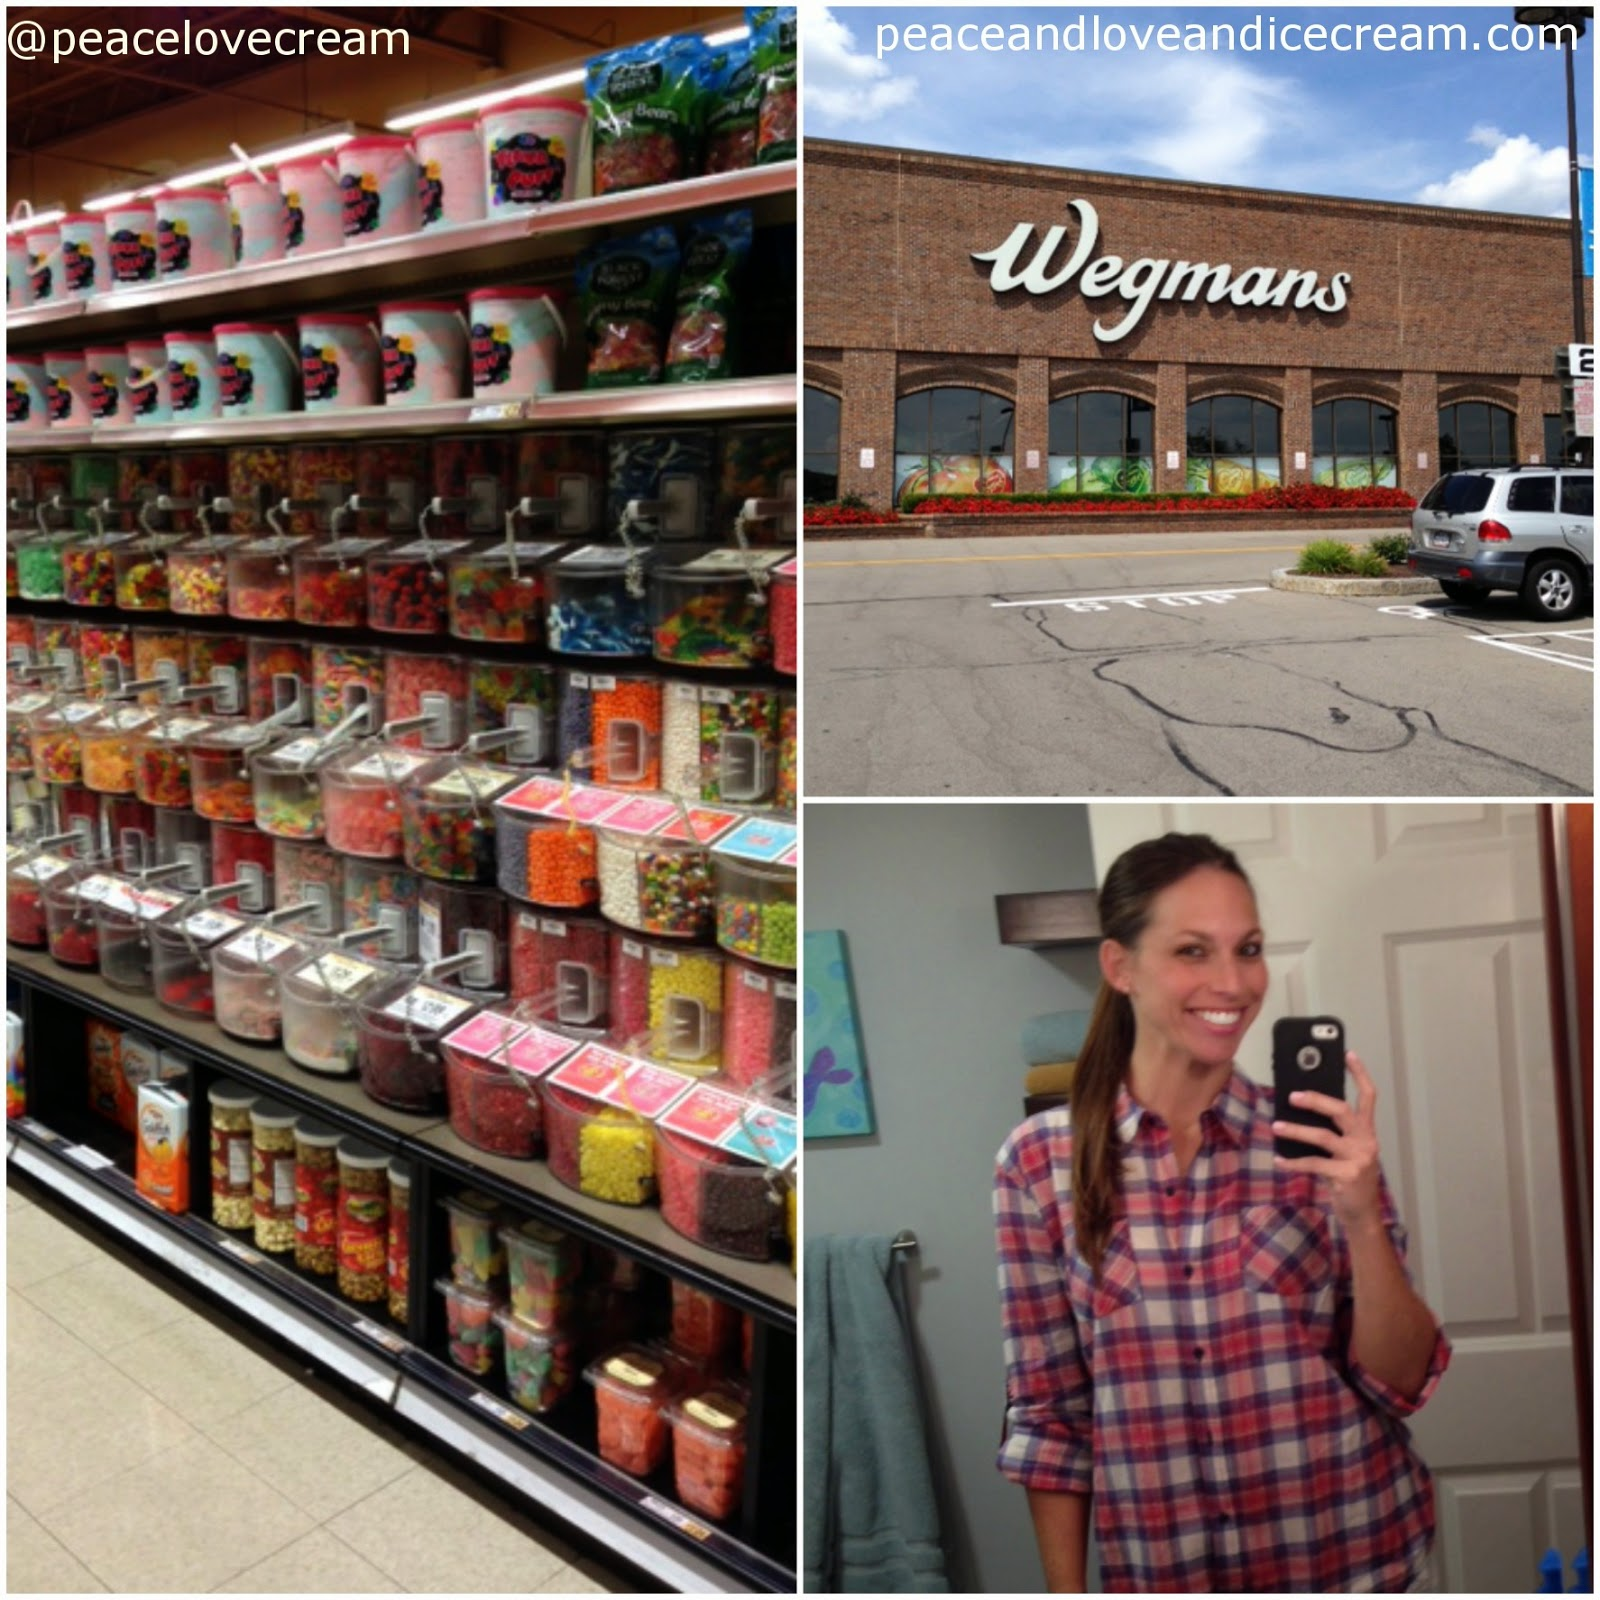 Wegmans. pick and mix. chocolate. plaid shirt. selfie.